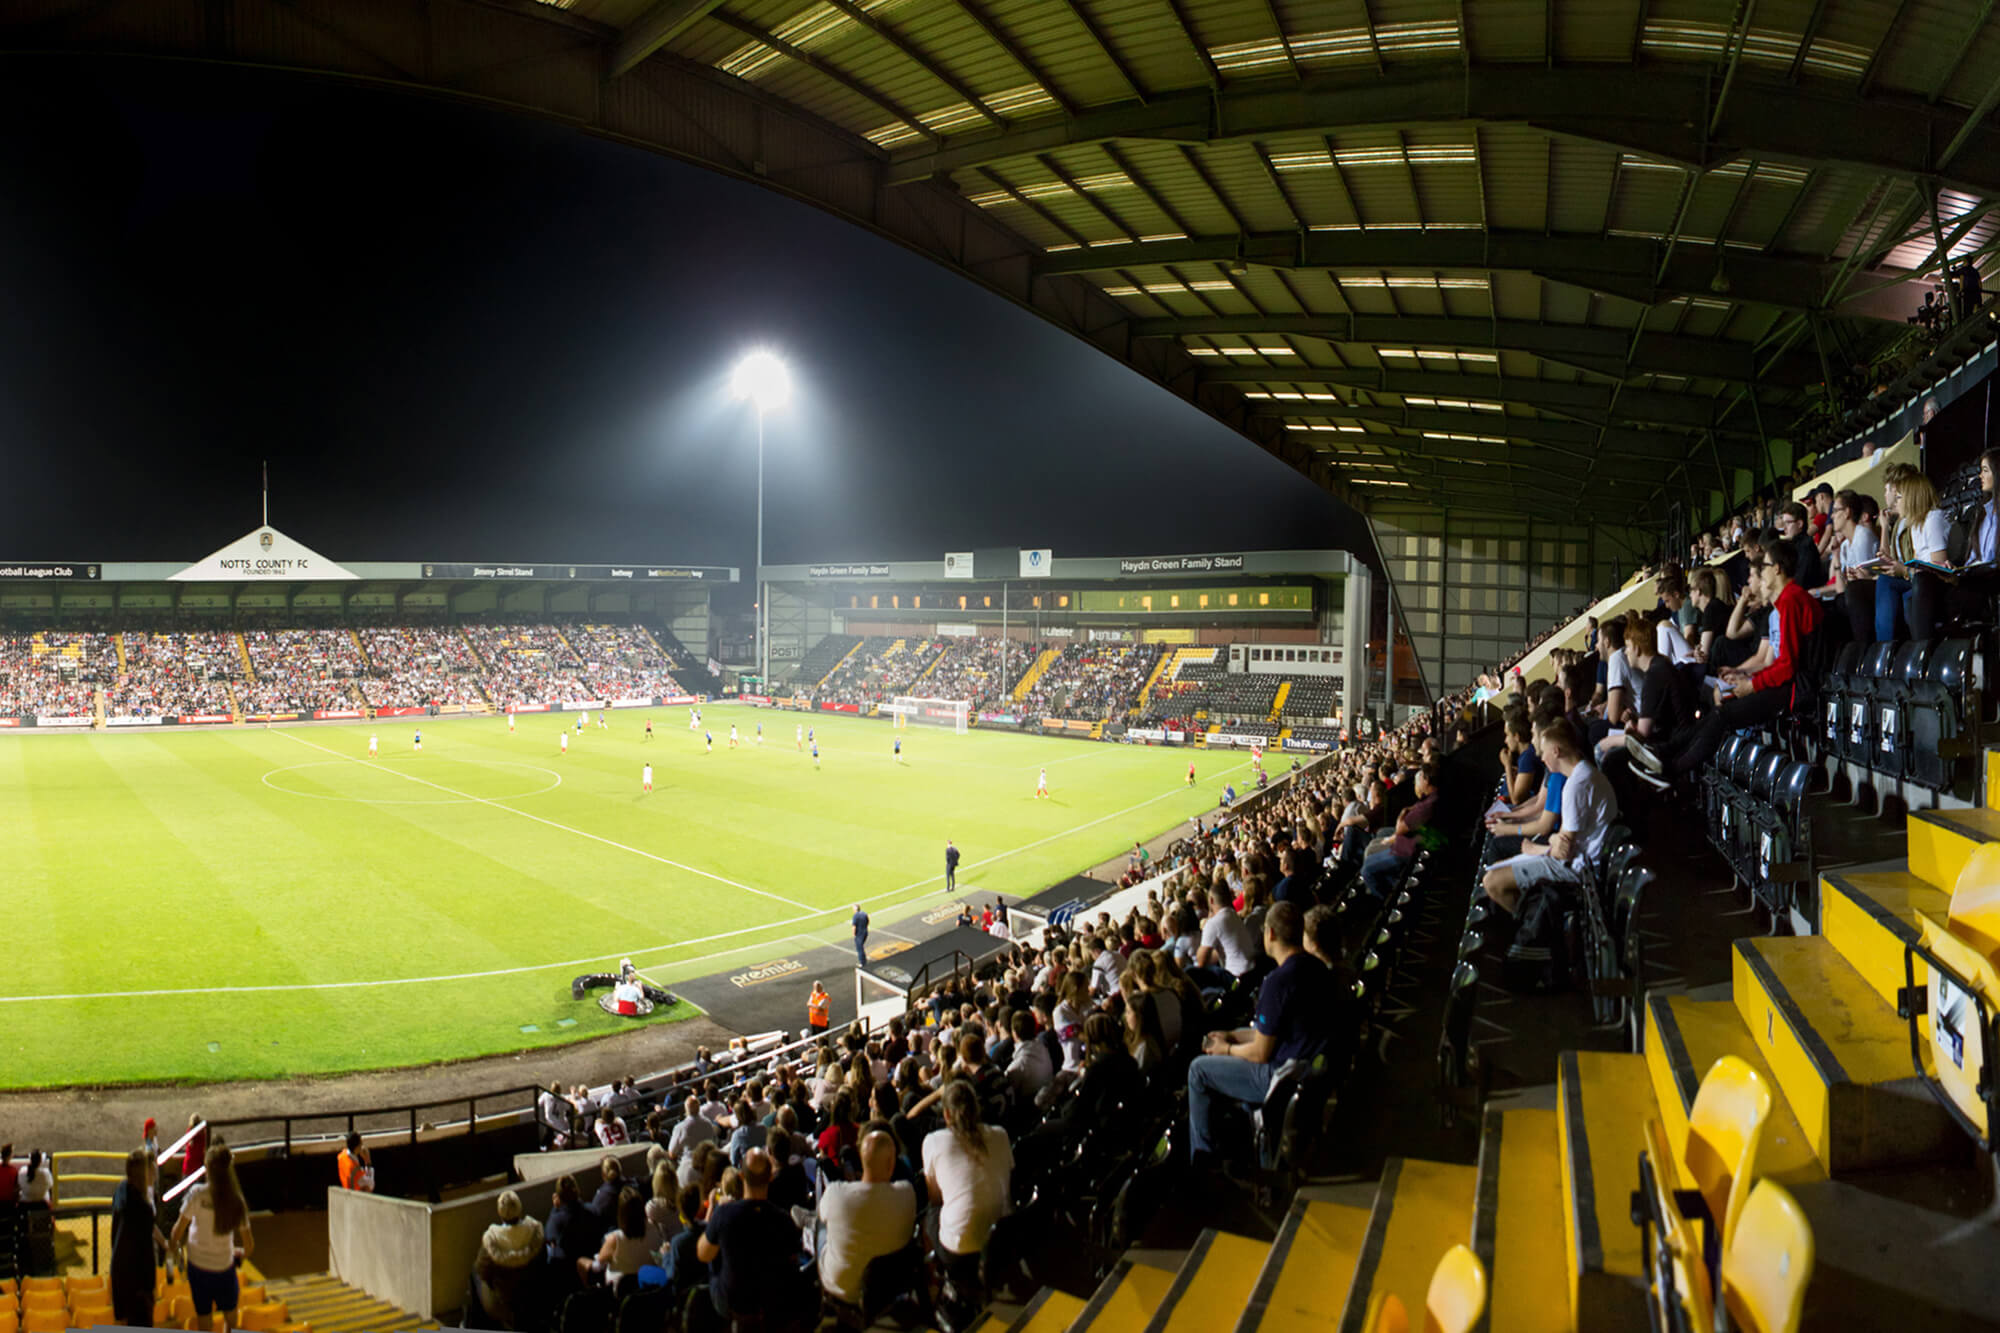 A football match with a live crowd.